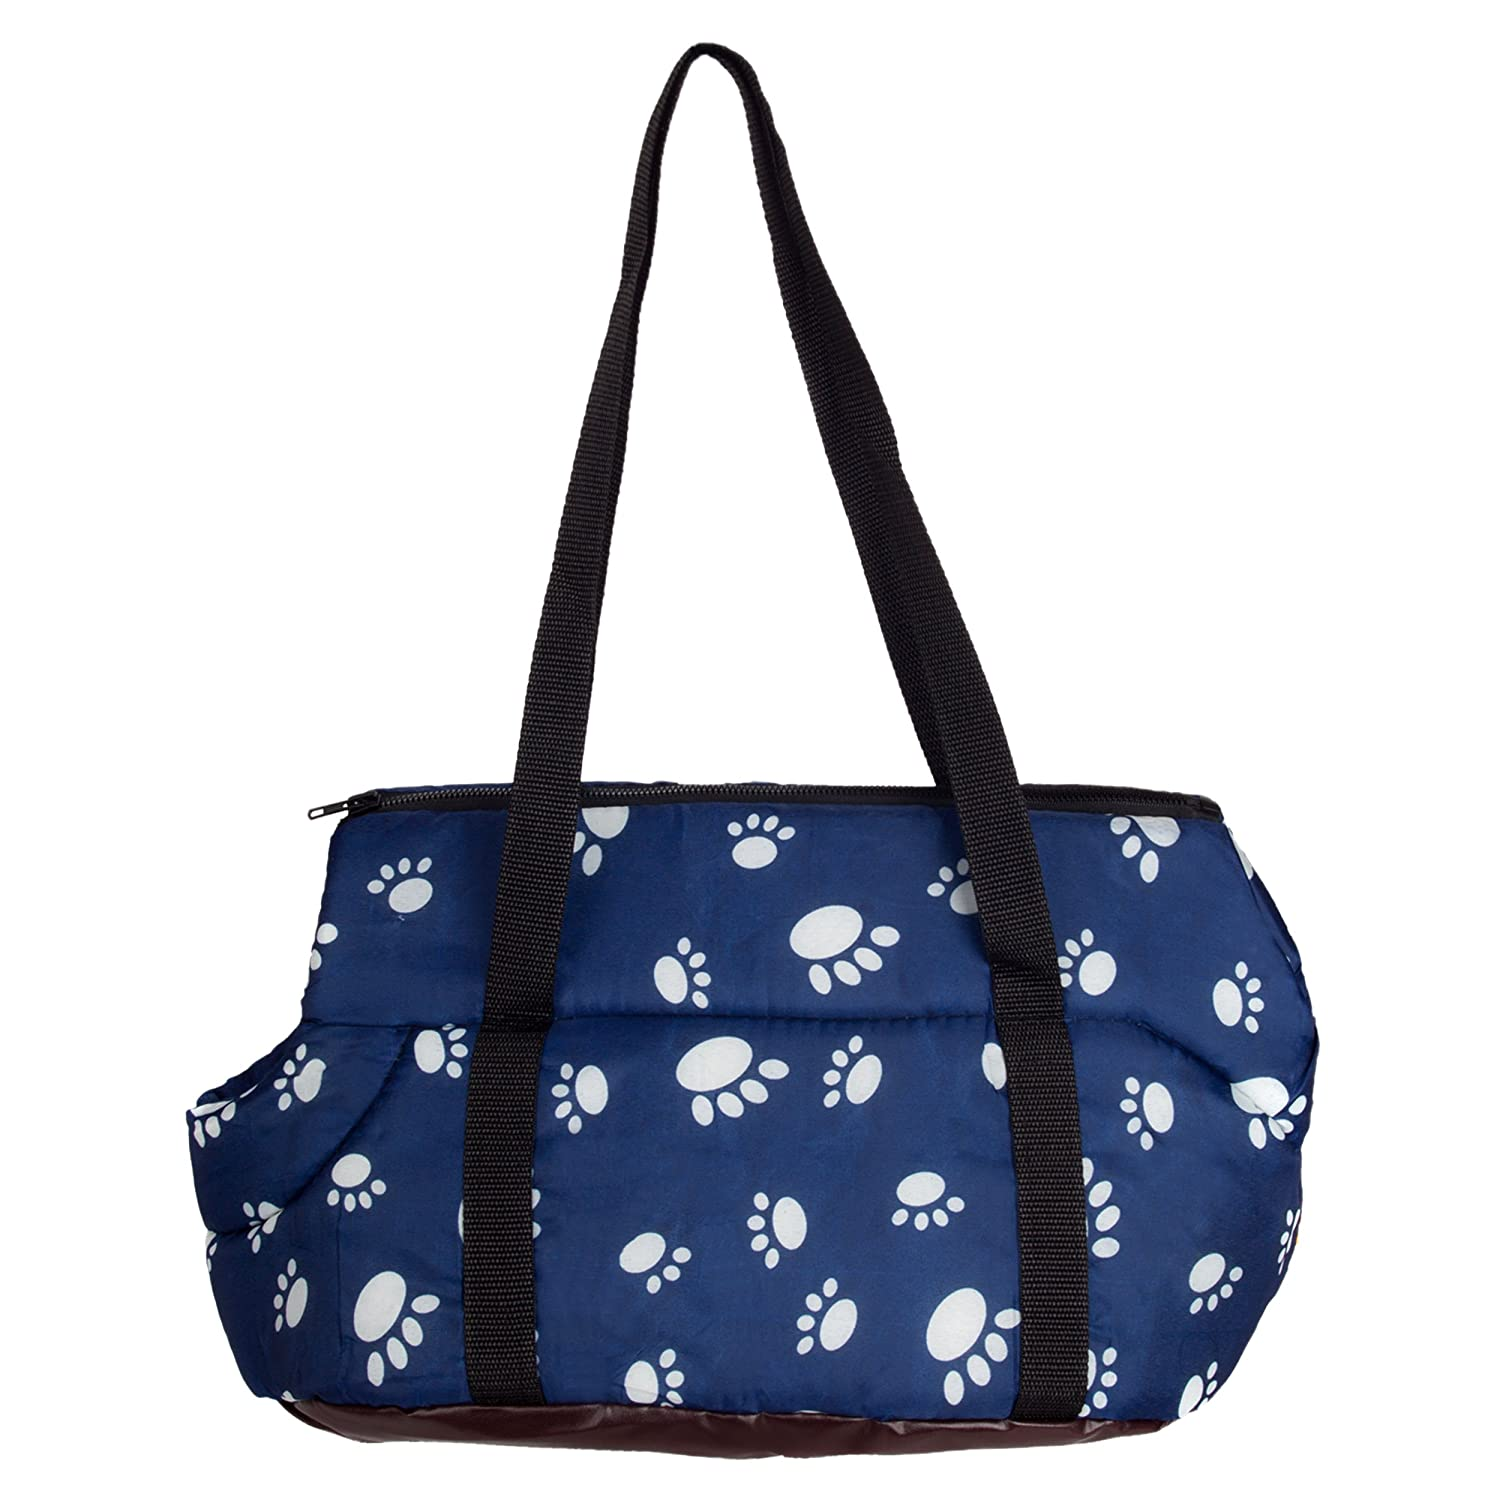 bluee Small bluee Small CueCue Pet Paw Print Dog-and-Cat Small Pet Carrier, bluee